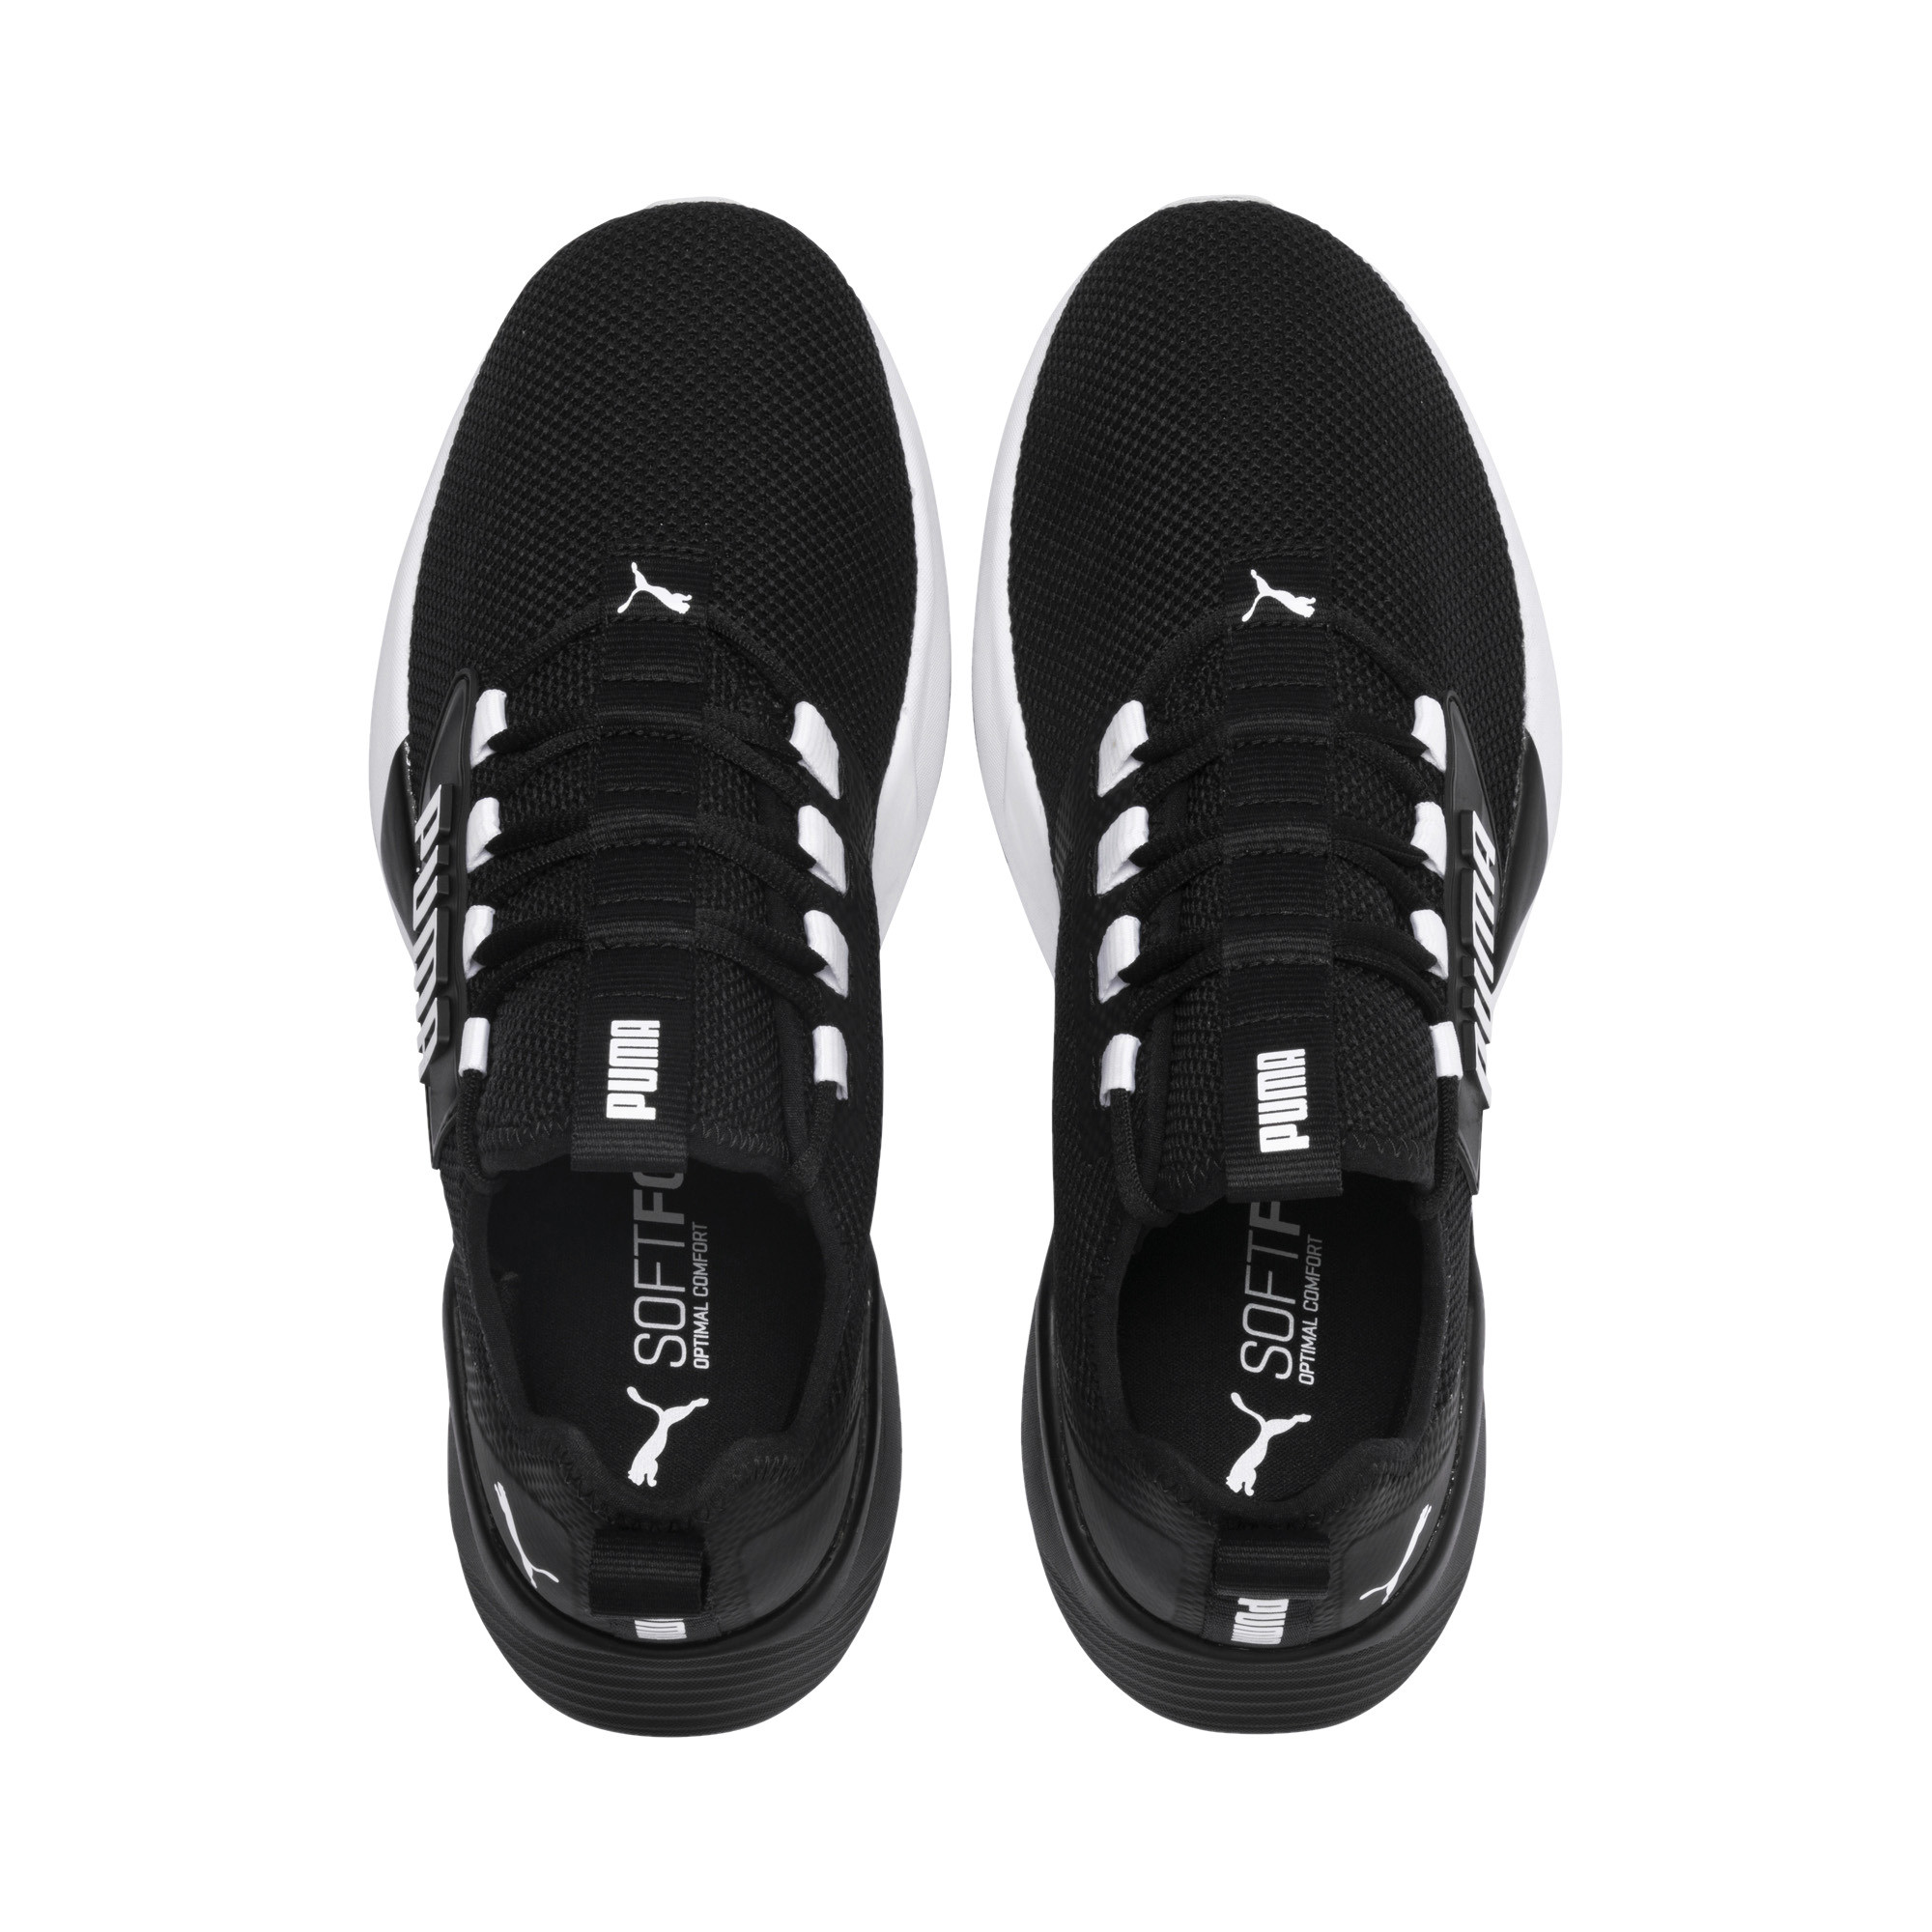 PUMA-Men-039-s-Retaliate-Training-Shoes thumbnail 9